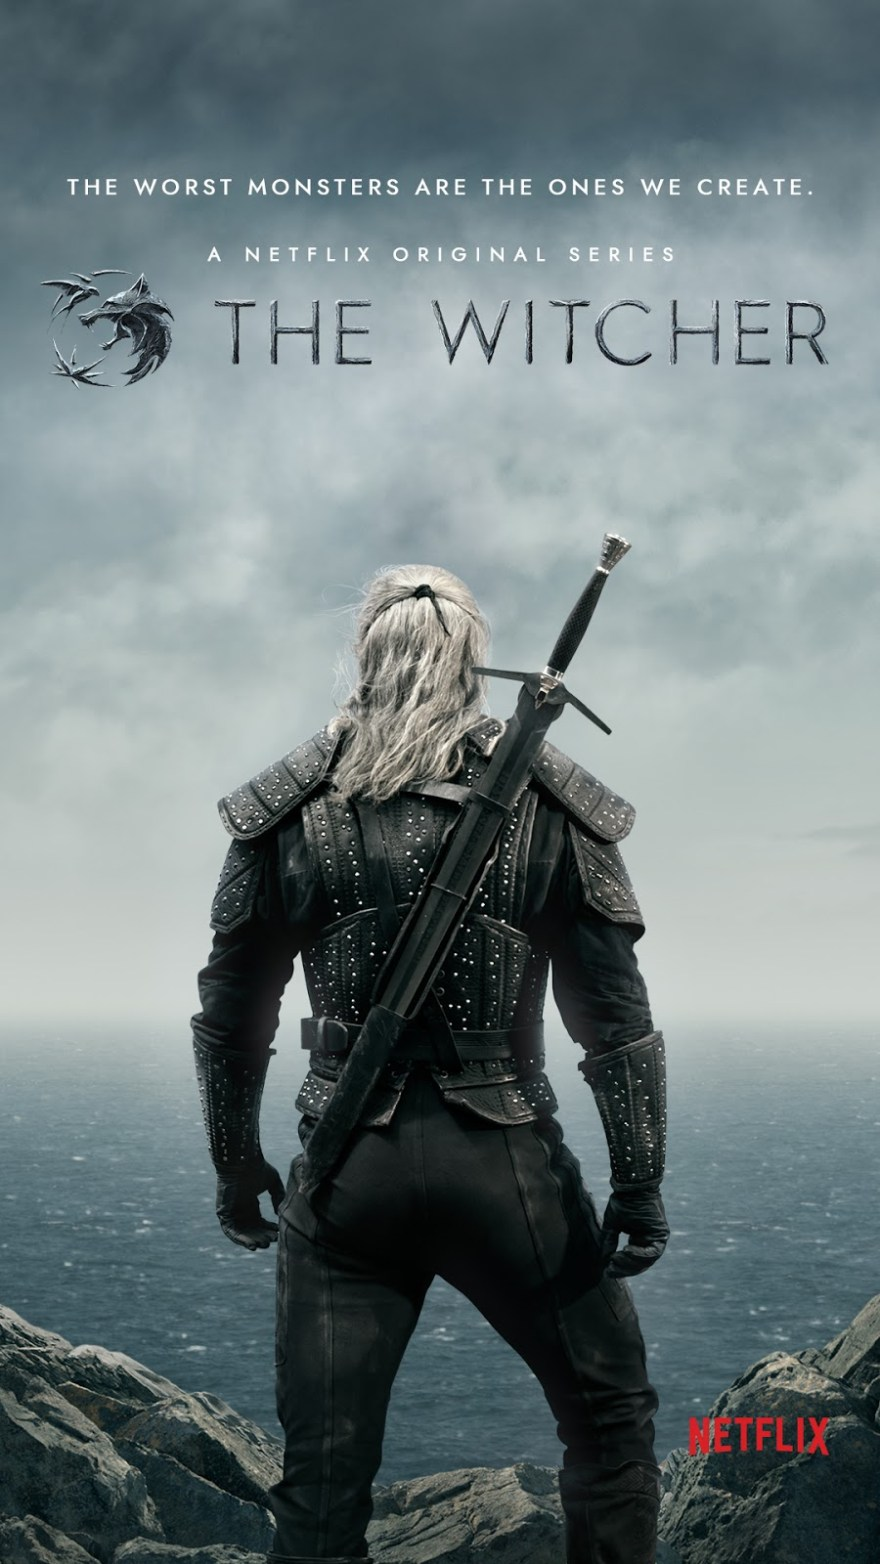 the-witcher-poster-netflix-oficial-2019.jpg